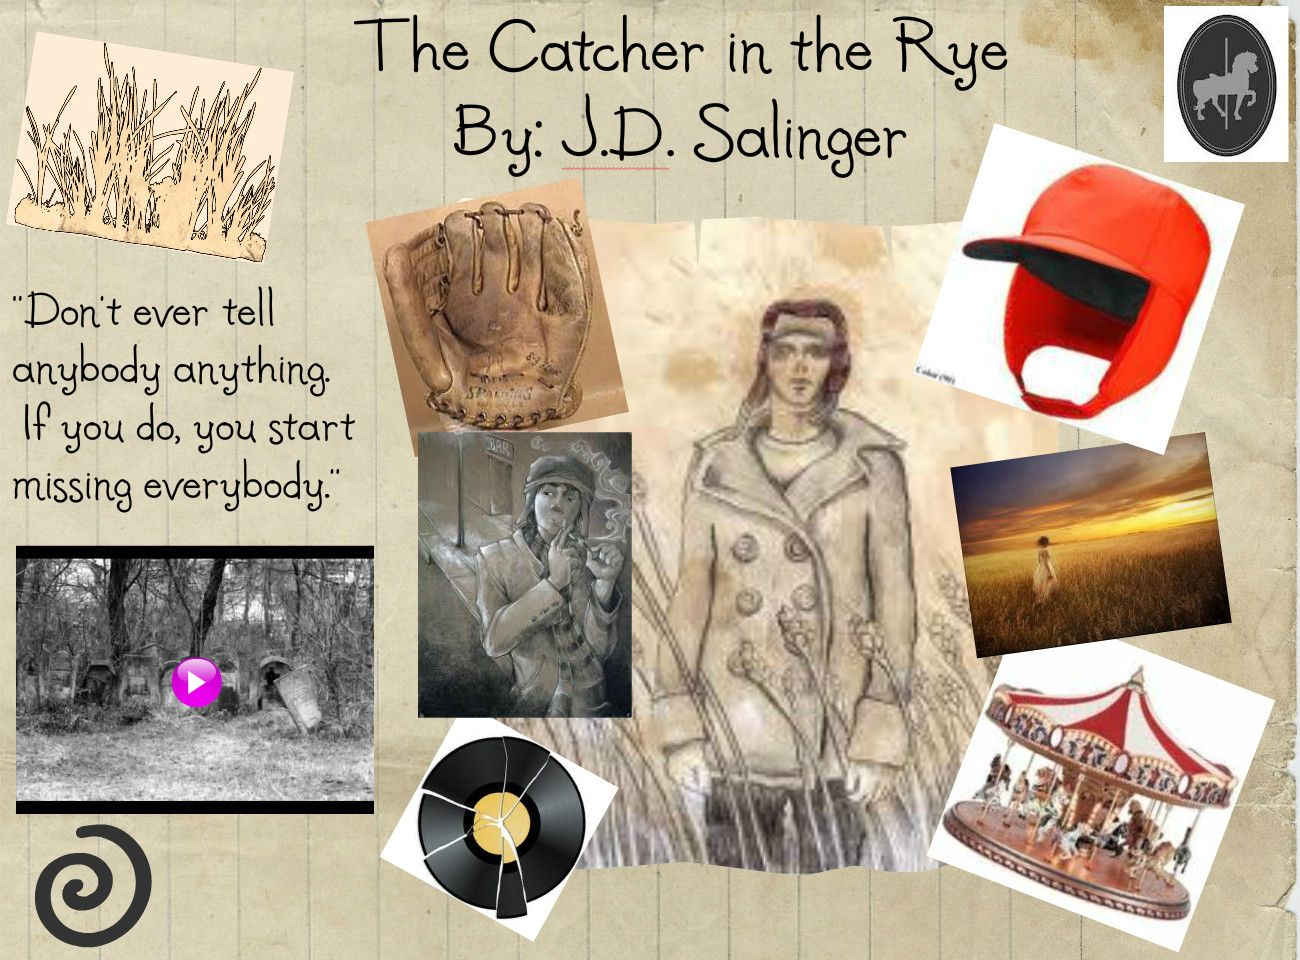 best images about the catcher in the rye holden 17 best images about the catcher in the rye holden caulfield english literature and messages